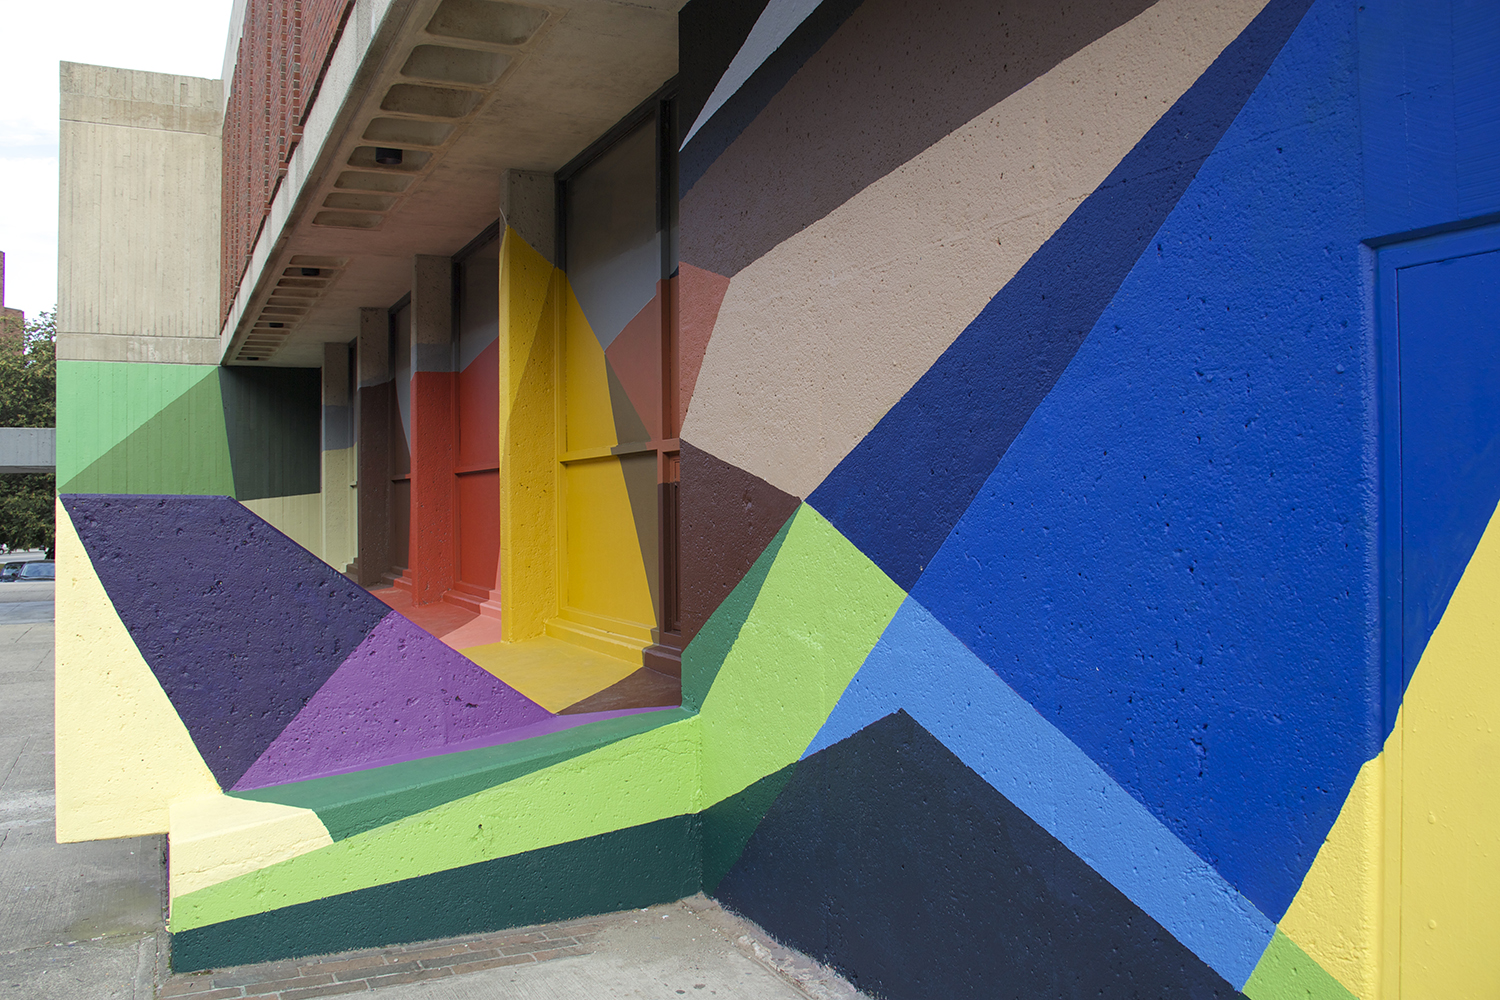 Razzle Dazzle ,   2015, Classical High School, Providence RI,  latex paint on exterior wall, curated by  The Avenue Concept